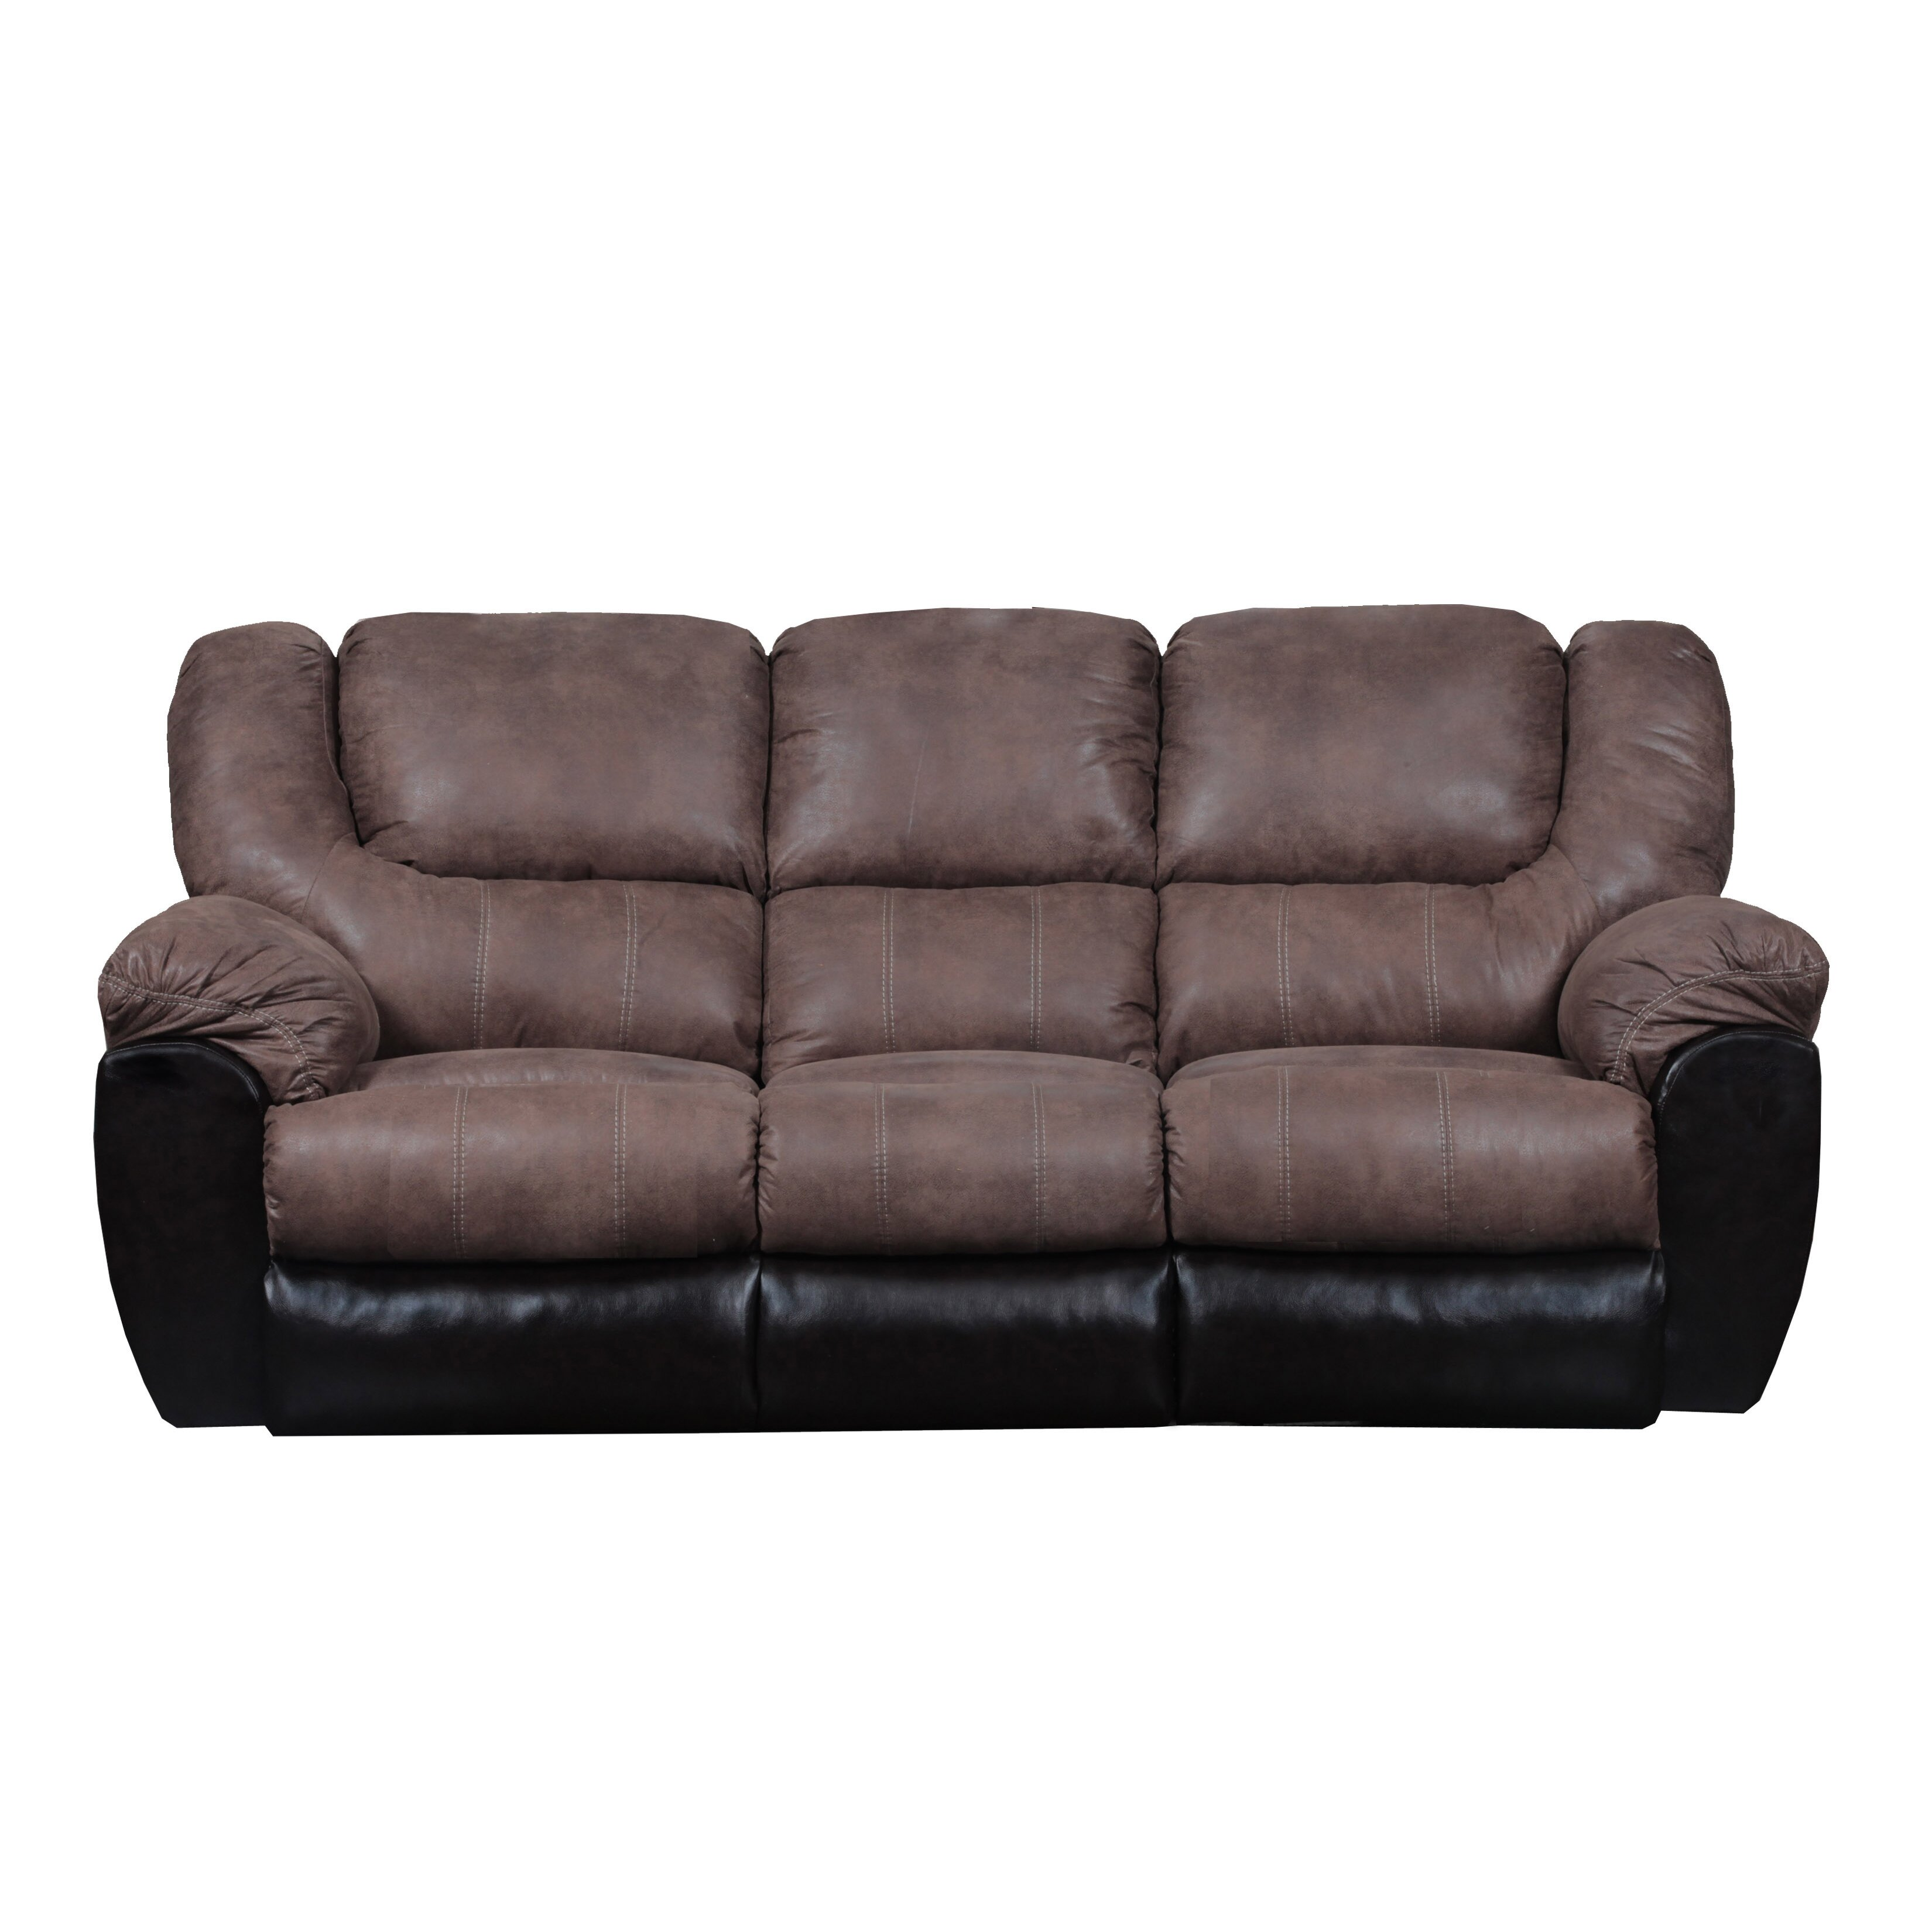 Simmons Upholstery Bandera Reclining Sofa Reviews Wayfair